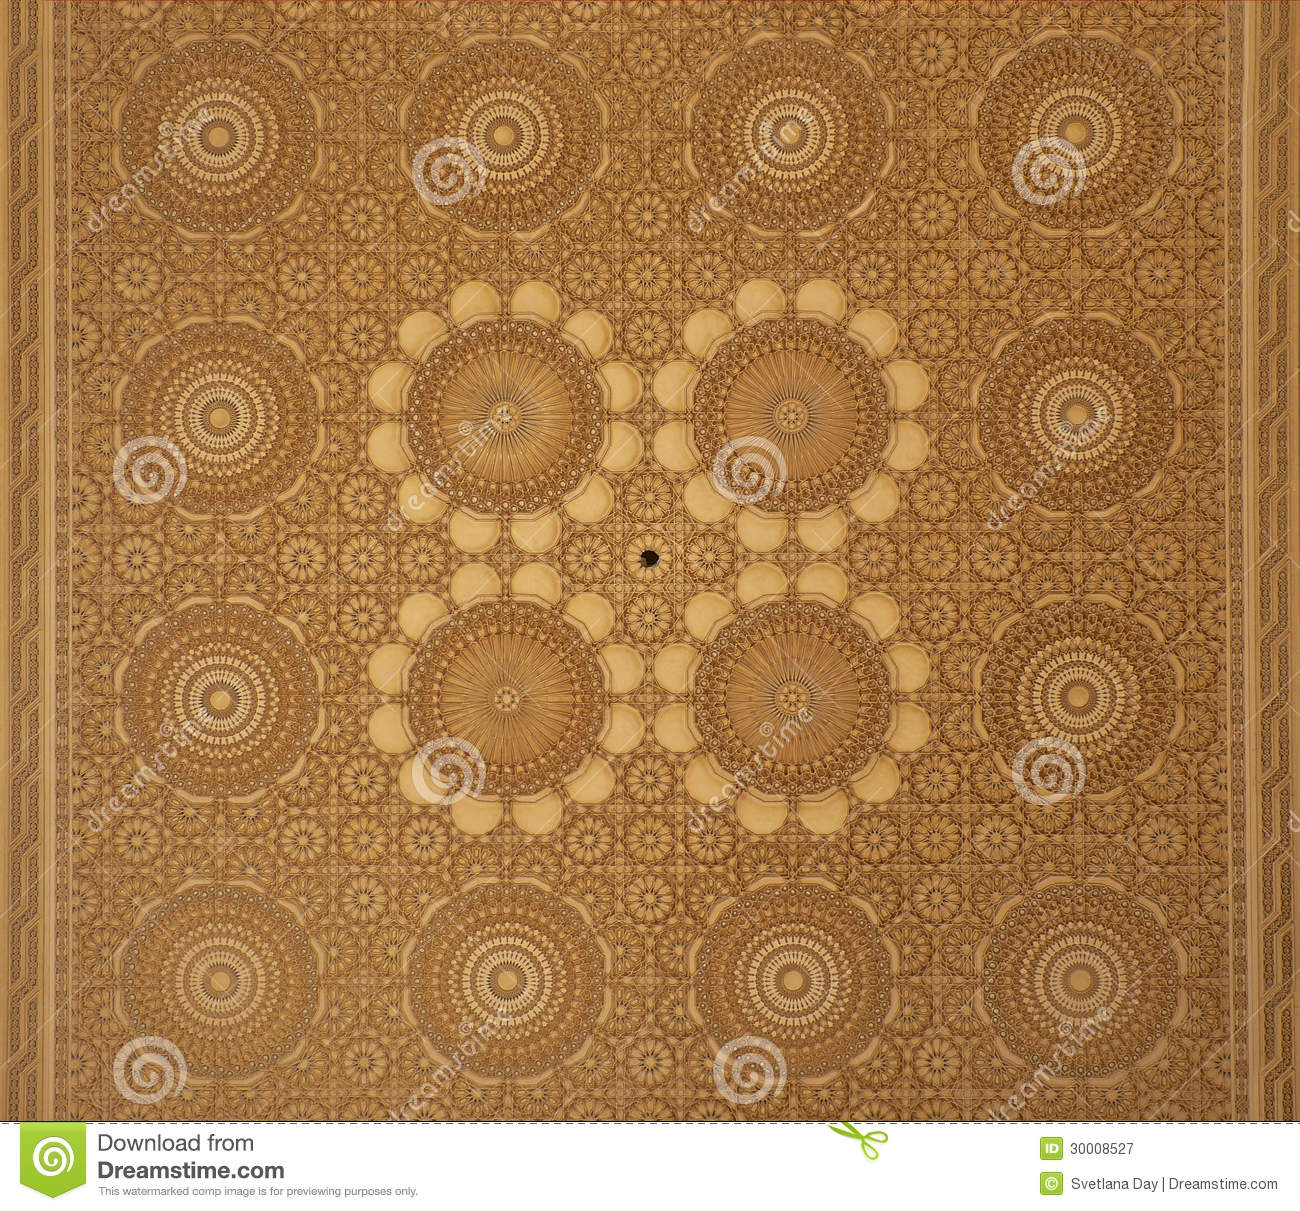 Moroccan arabesque design ceiling stock image image of for Arabesque style decoration